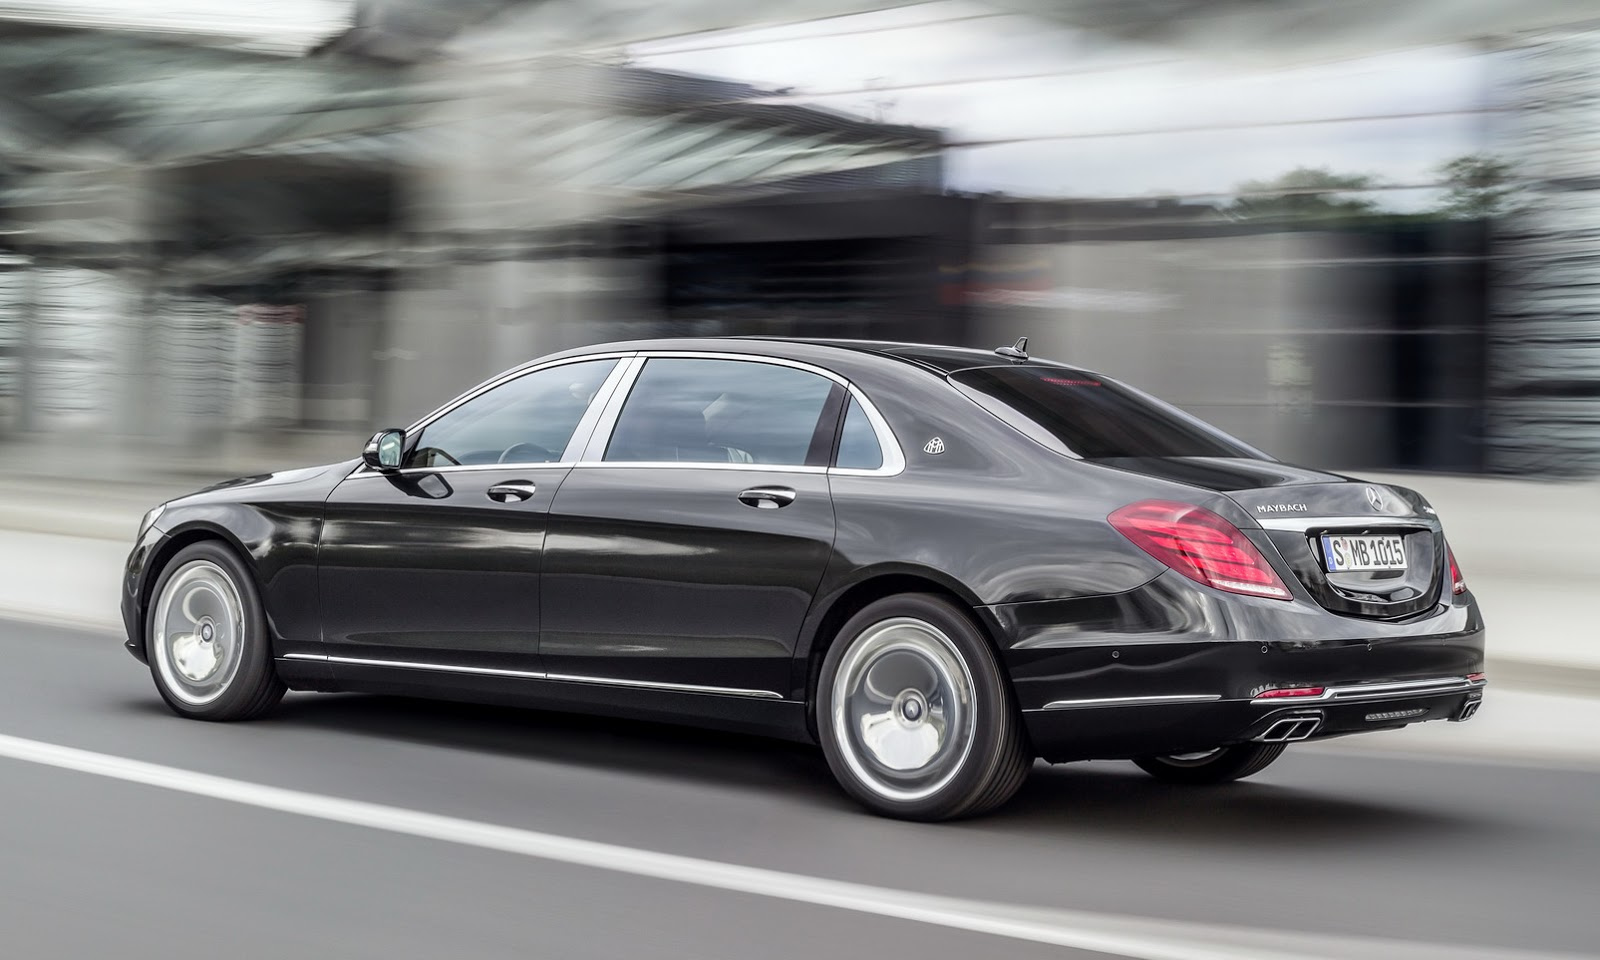 new mercedes maybach s class oozes of opulence 55 pics videos carscoops. Black Bedroom Furniture Sets. Home Design Ideas